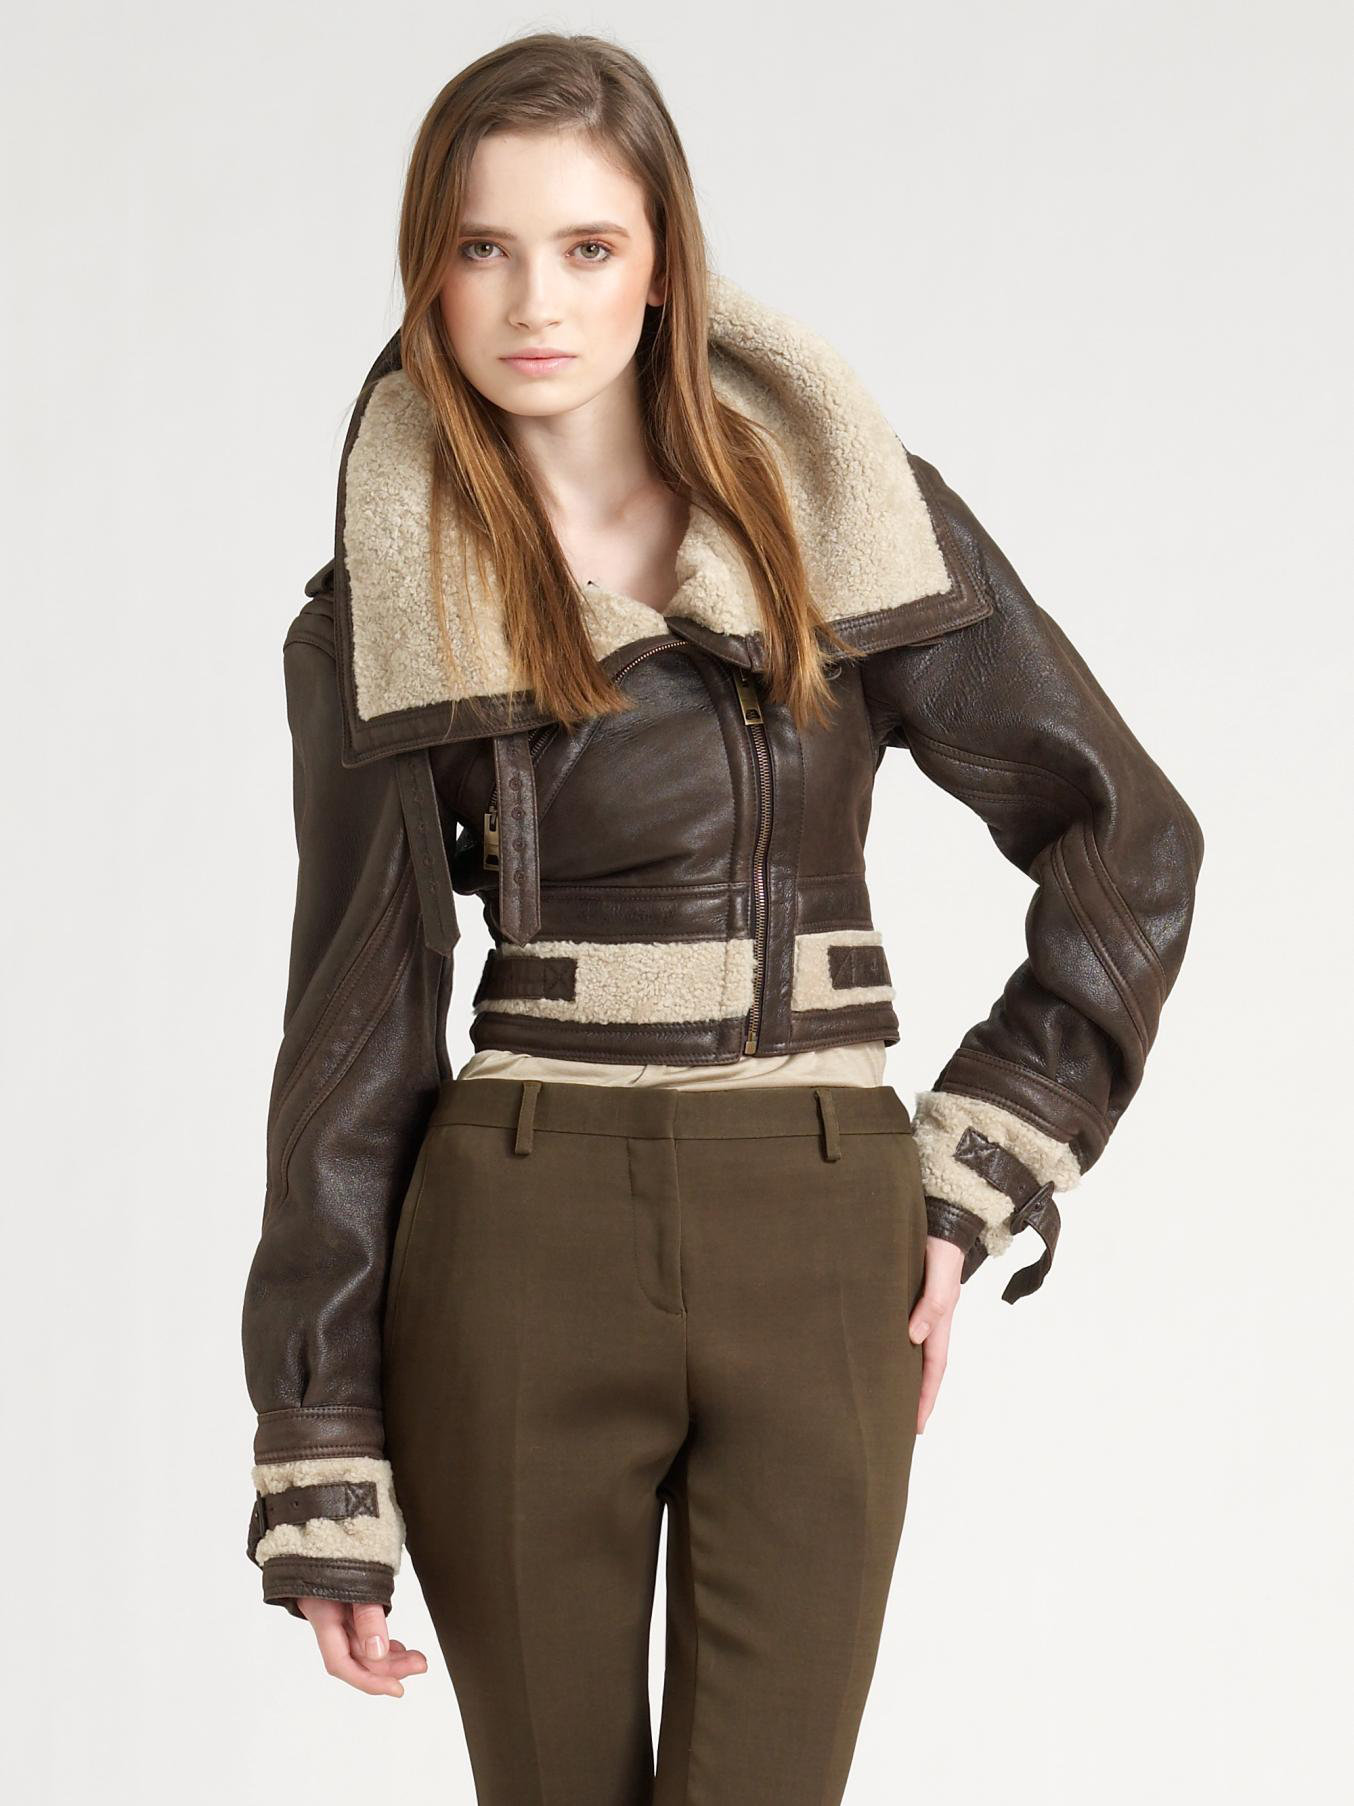 Burberry prorsum Shearling Aviator Jacket in Brown | Lyst